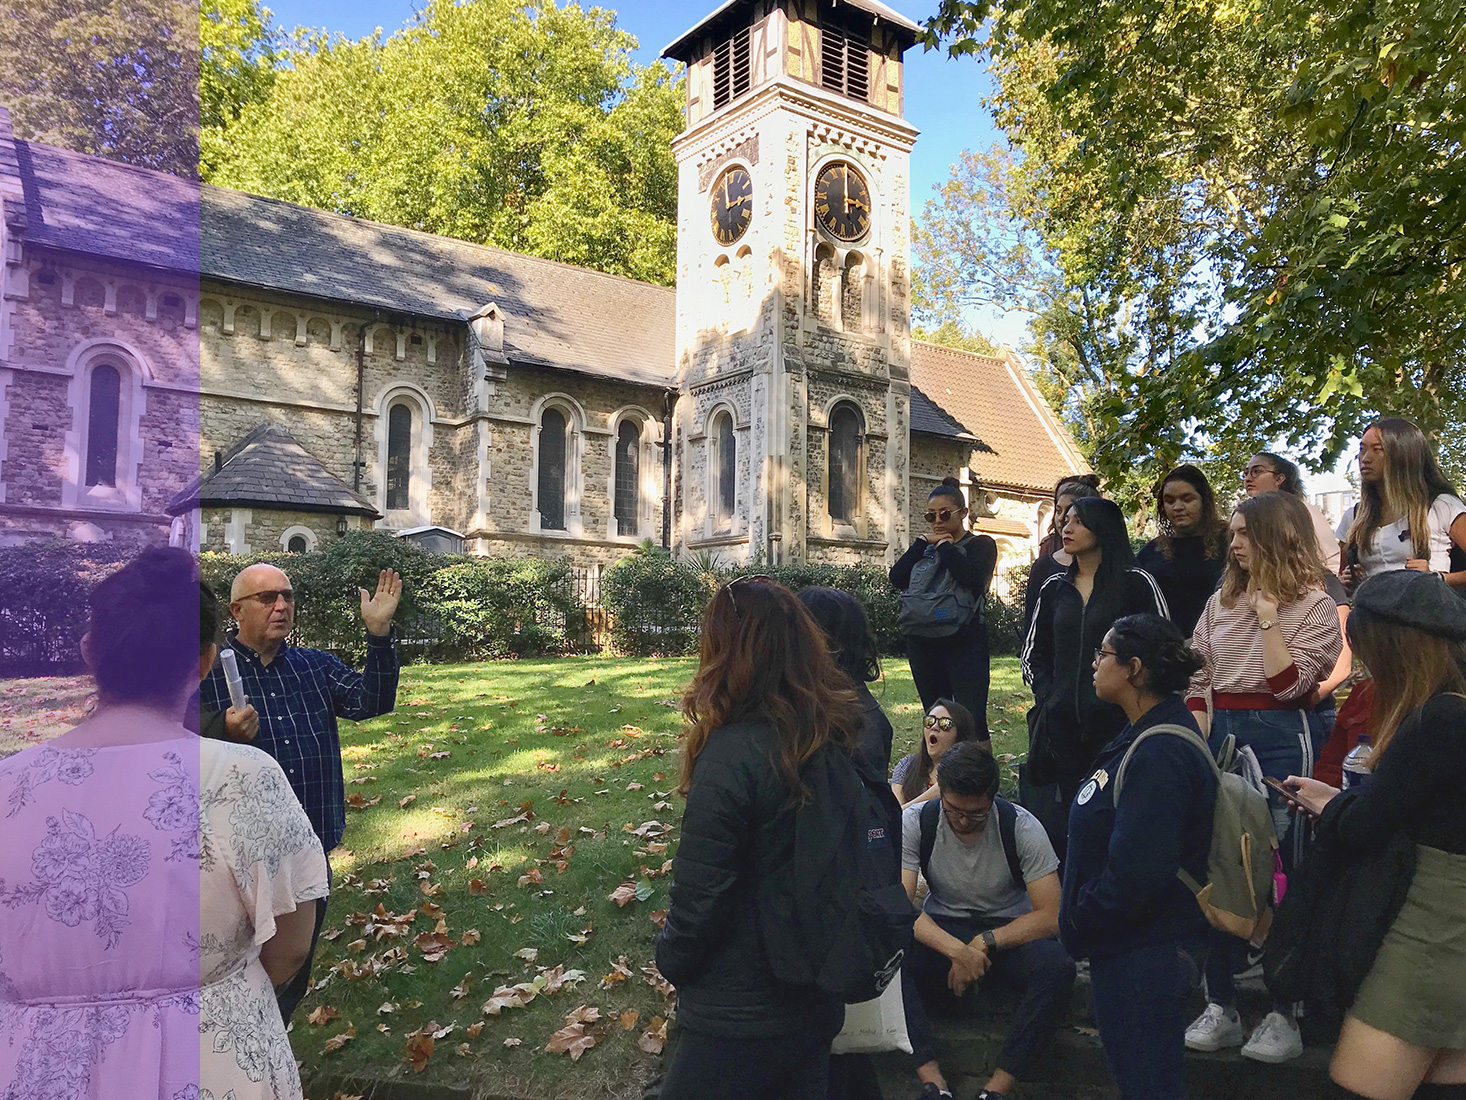 A group of students in England learn about the historic location they're visiting.